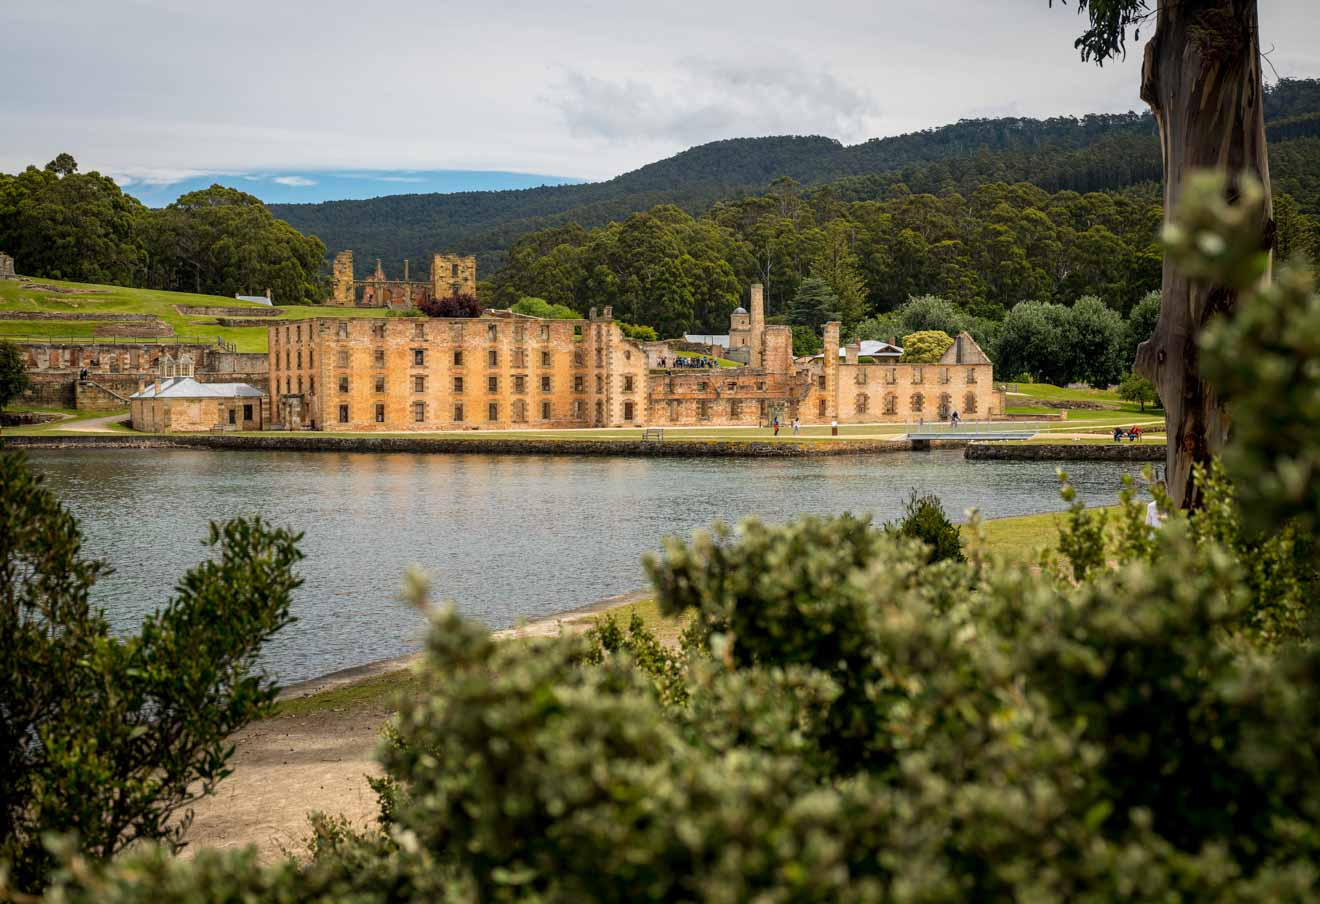 Best of Port Arthur Historic Site tasmania